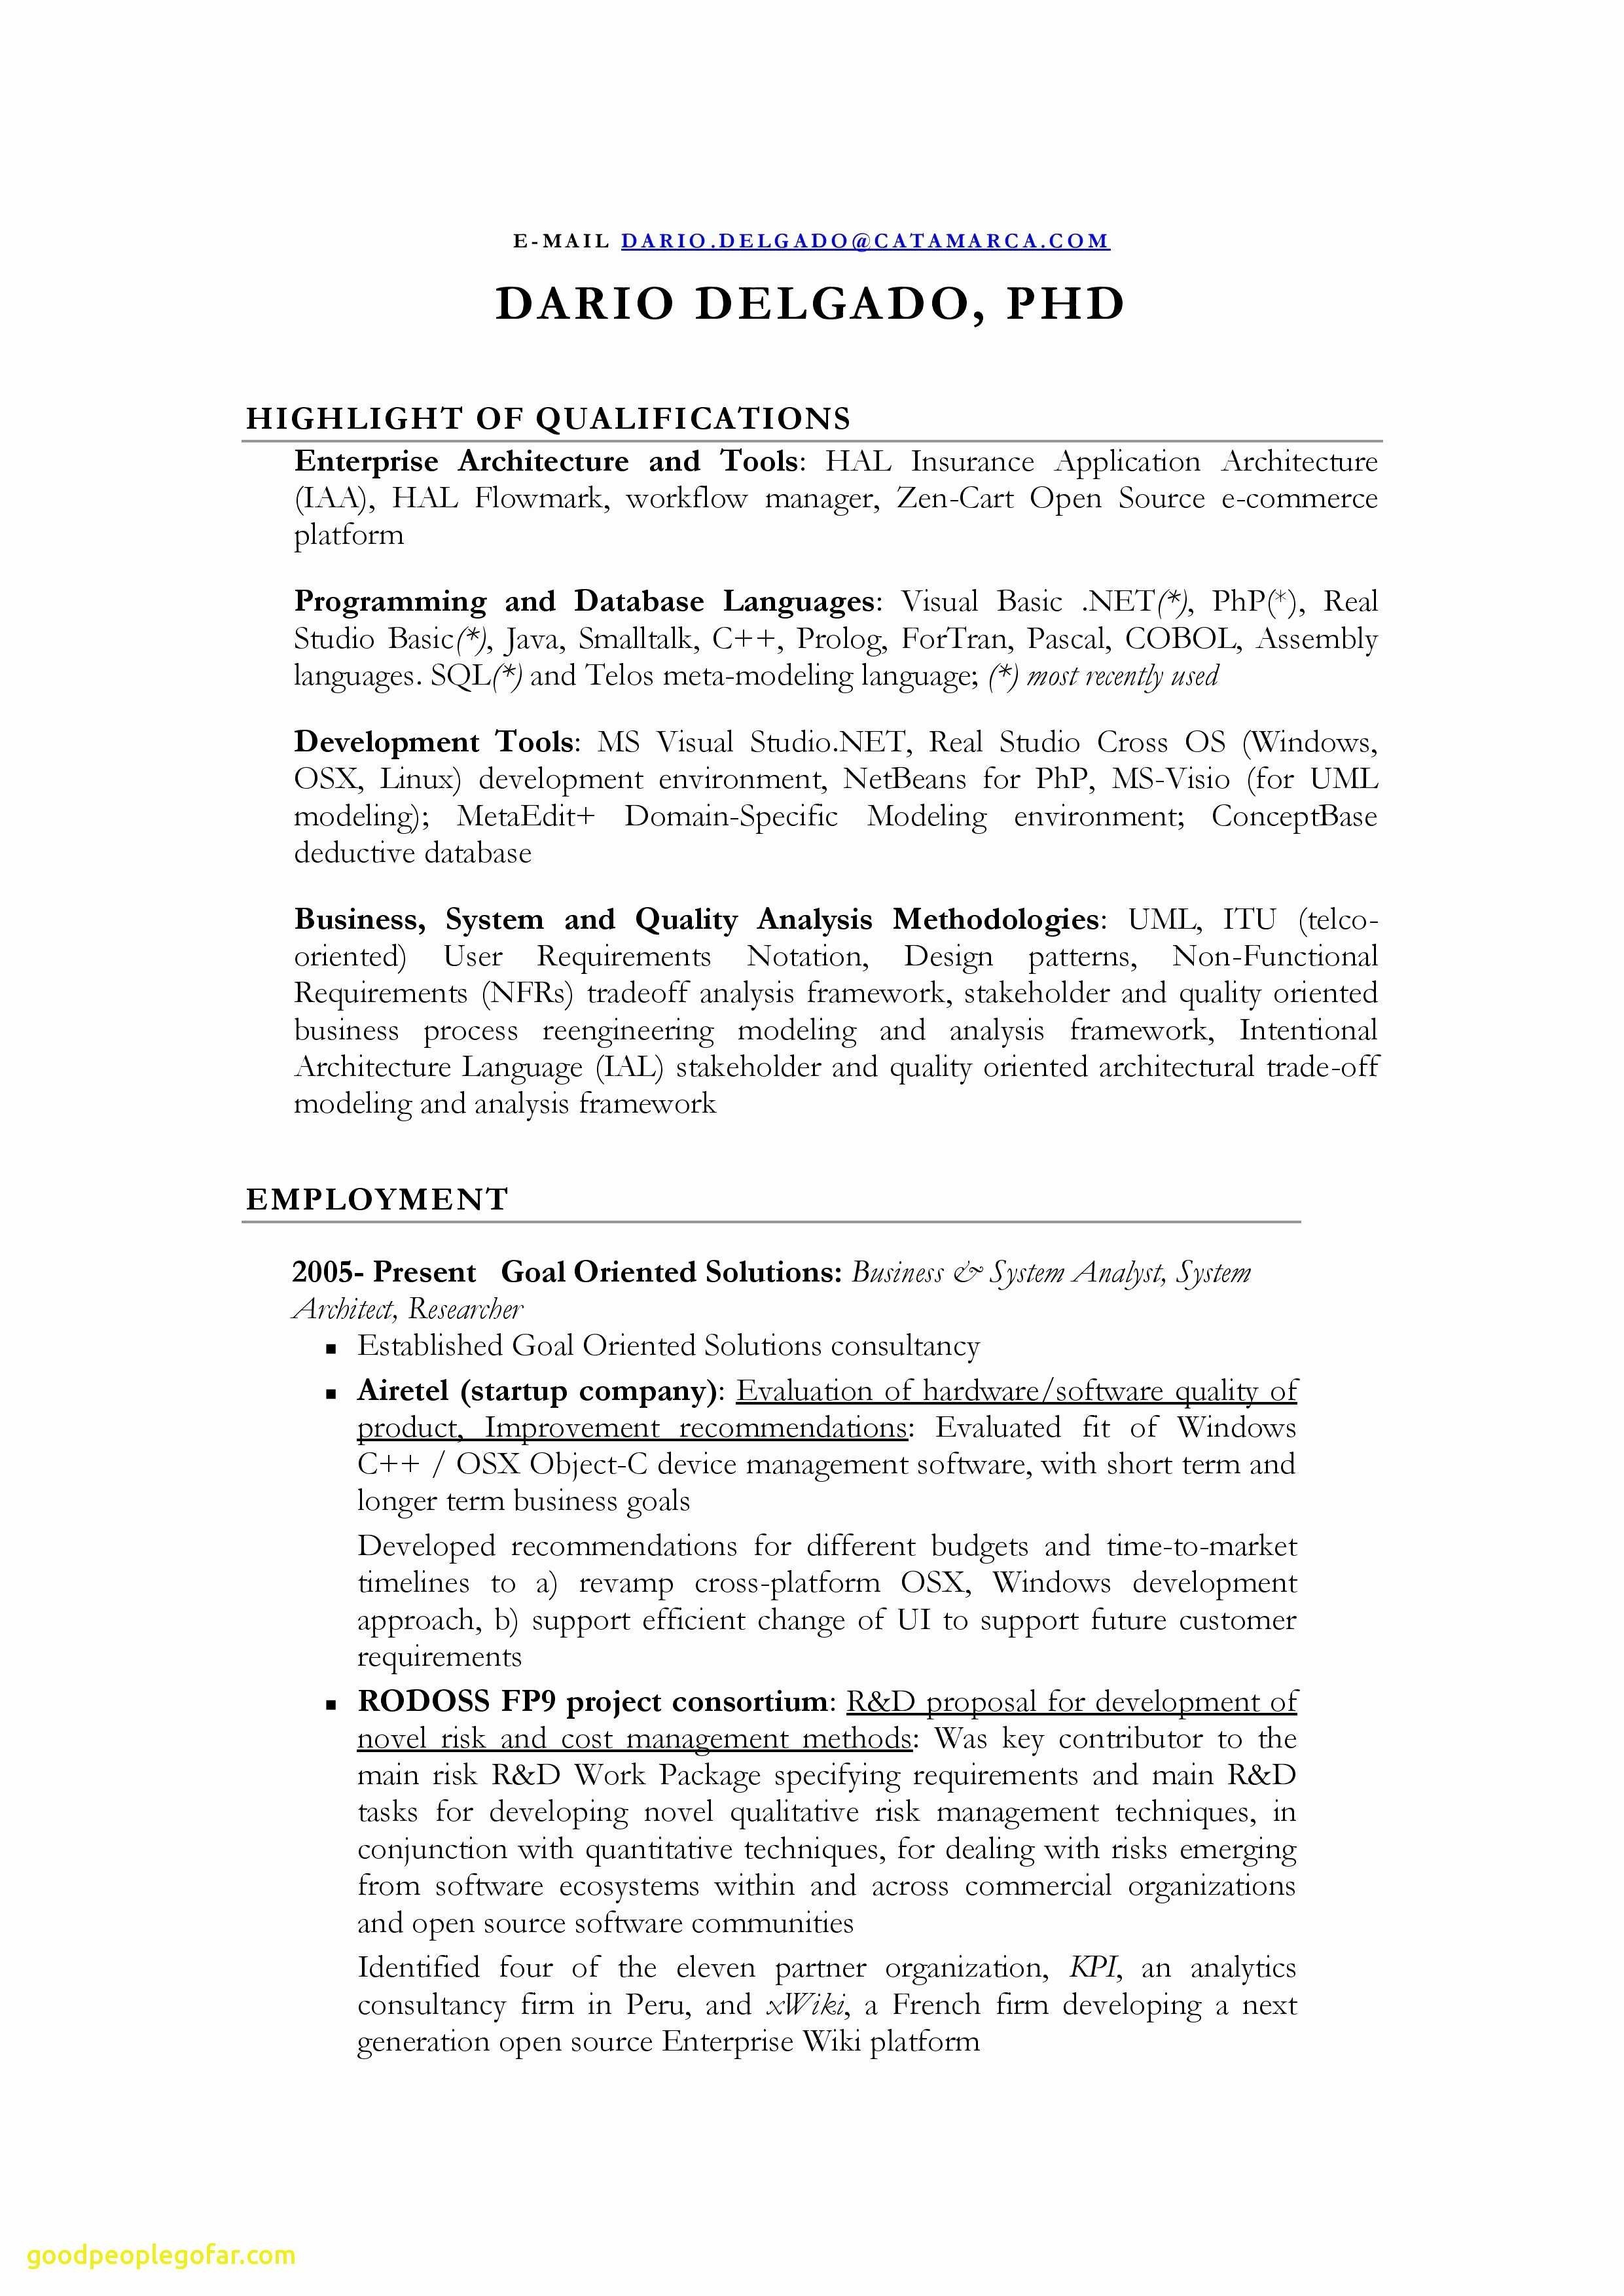 Resume Template for Secretary - Executive Secretary Resume Lovely Resume Template Executive